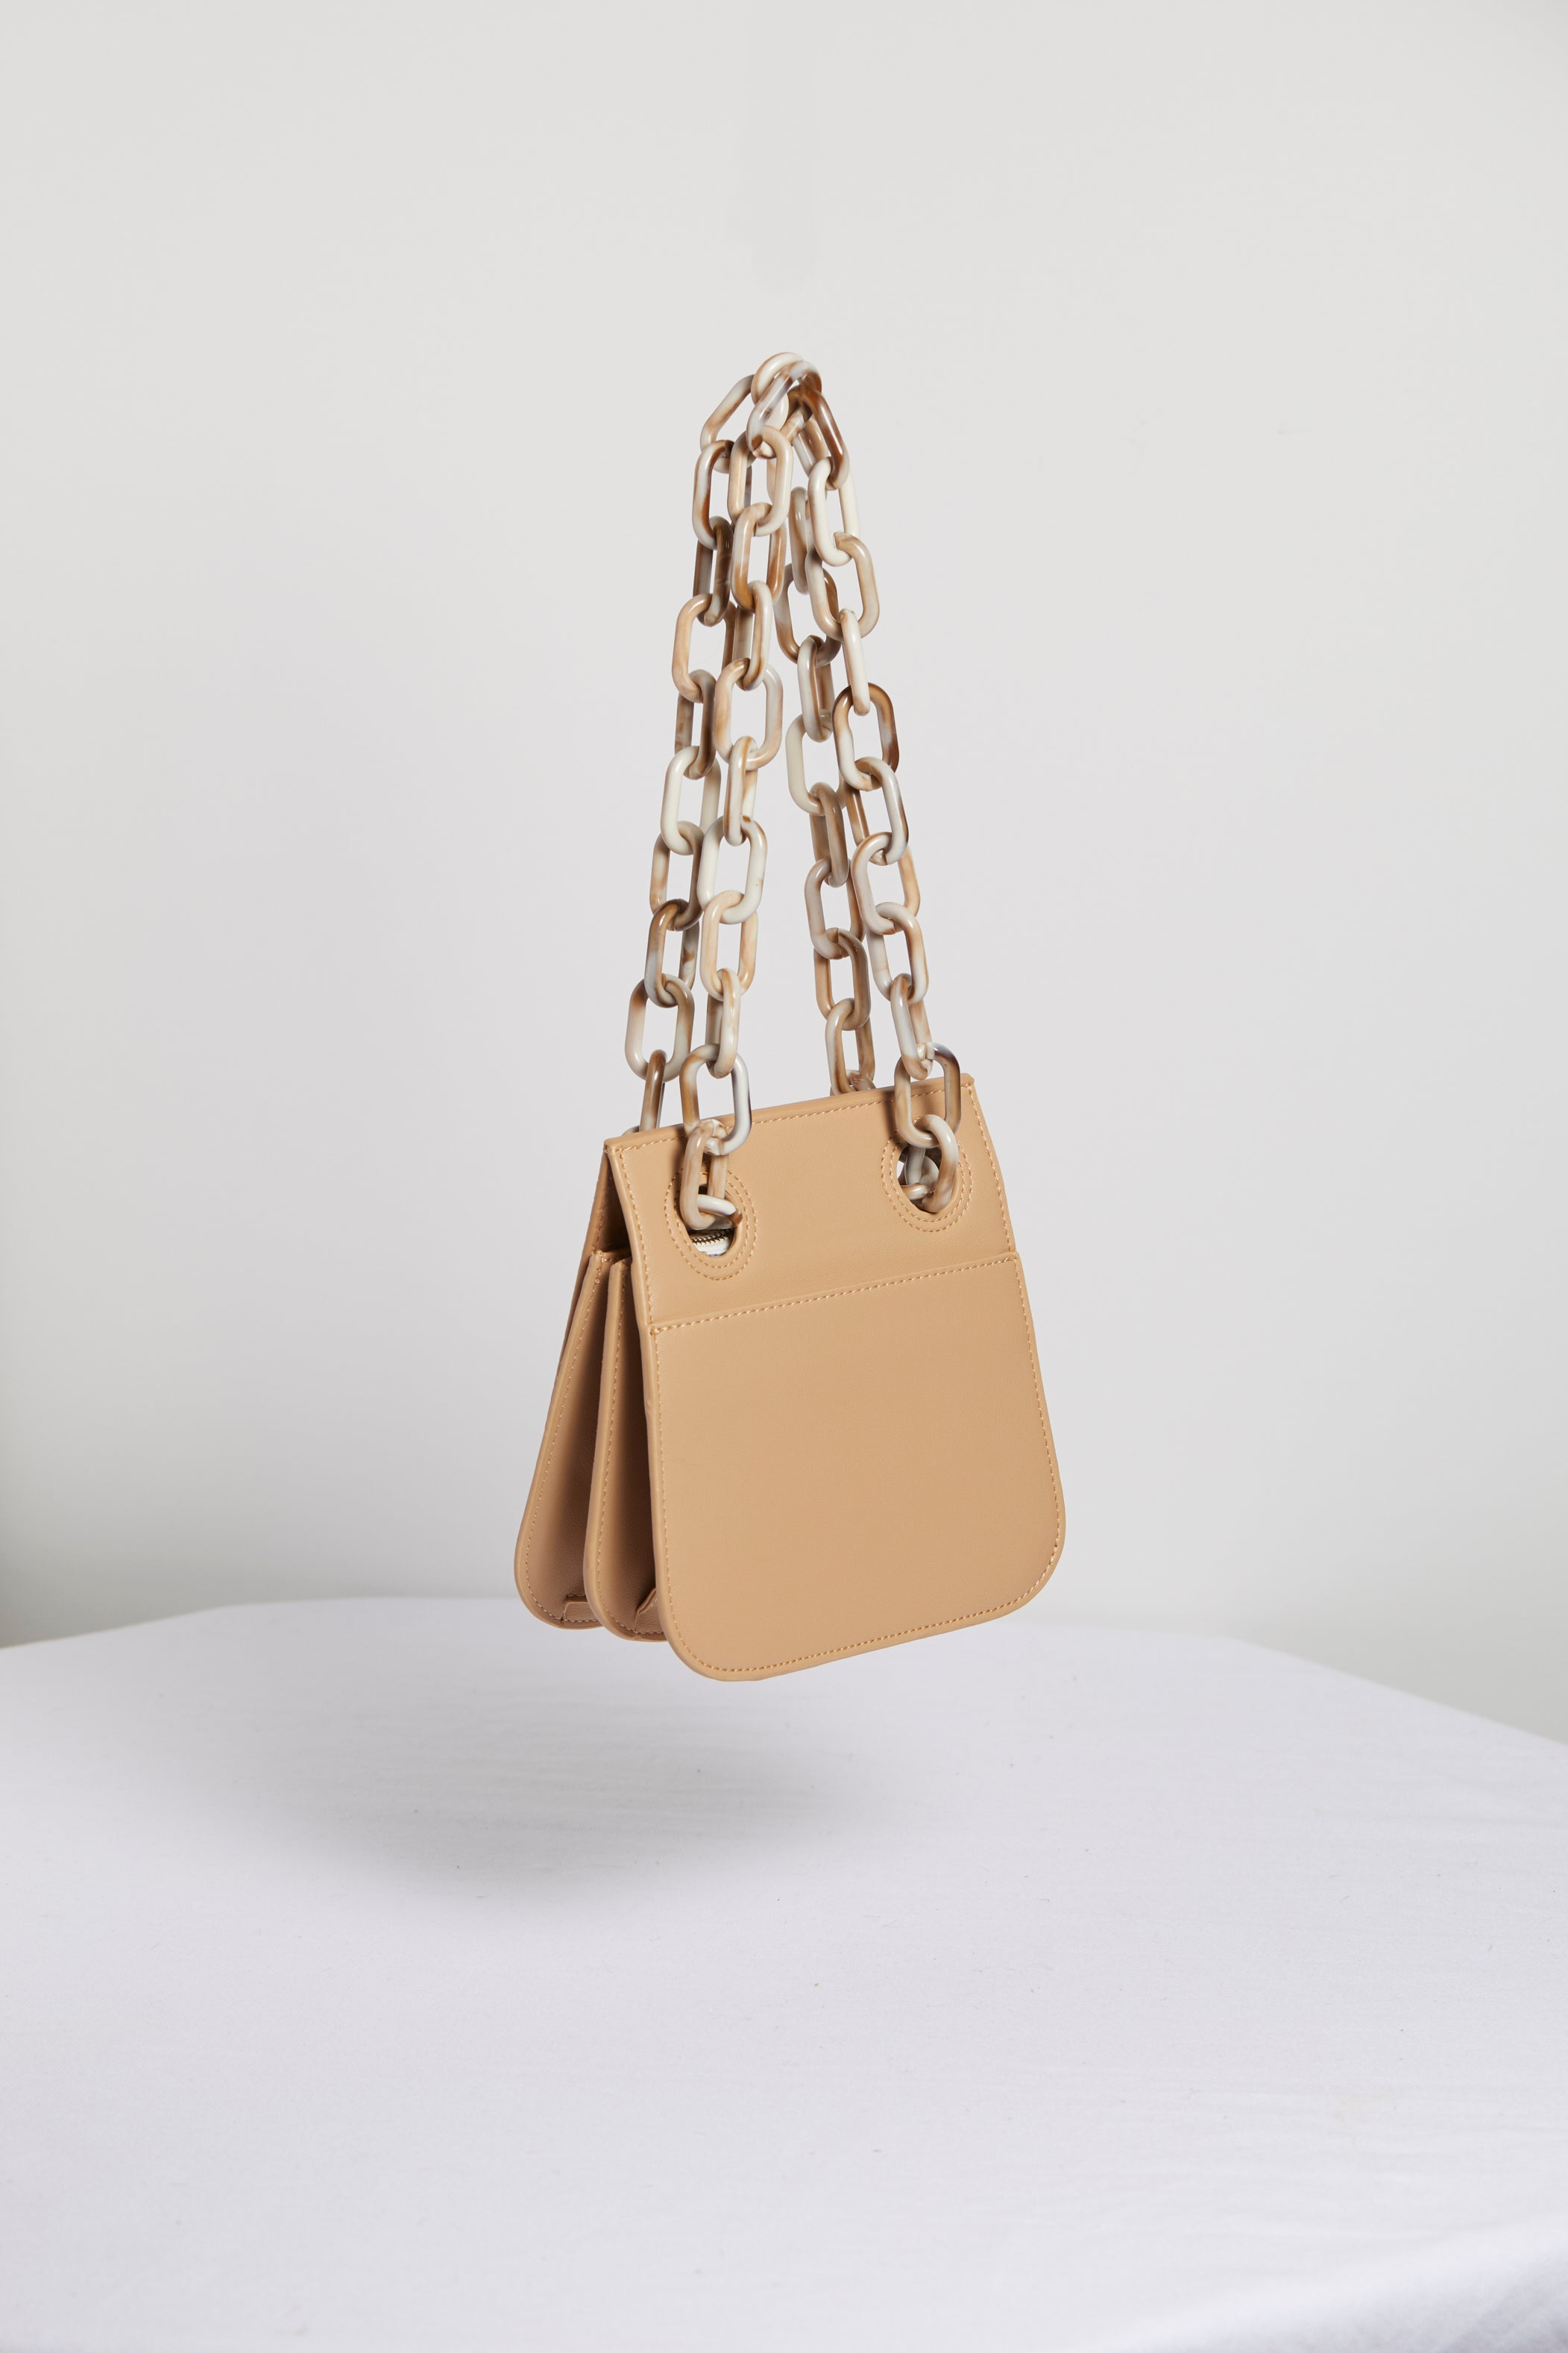 Linked Flap Shoulder Bag - picnic-sf